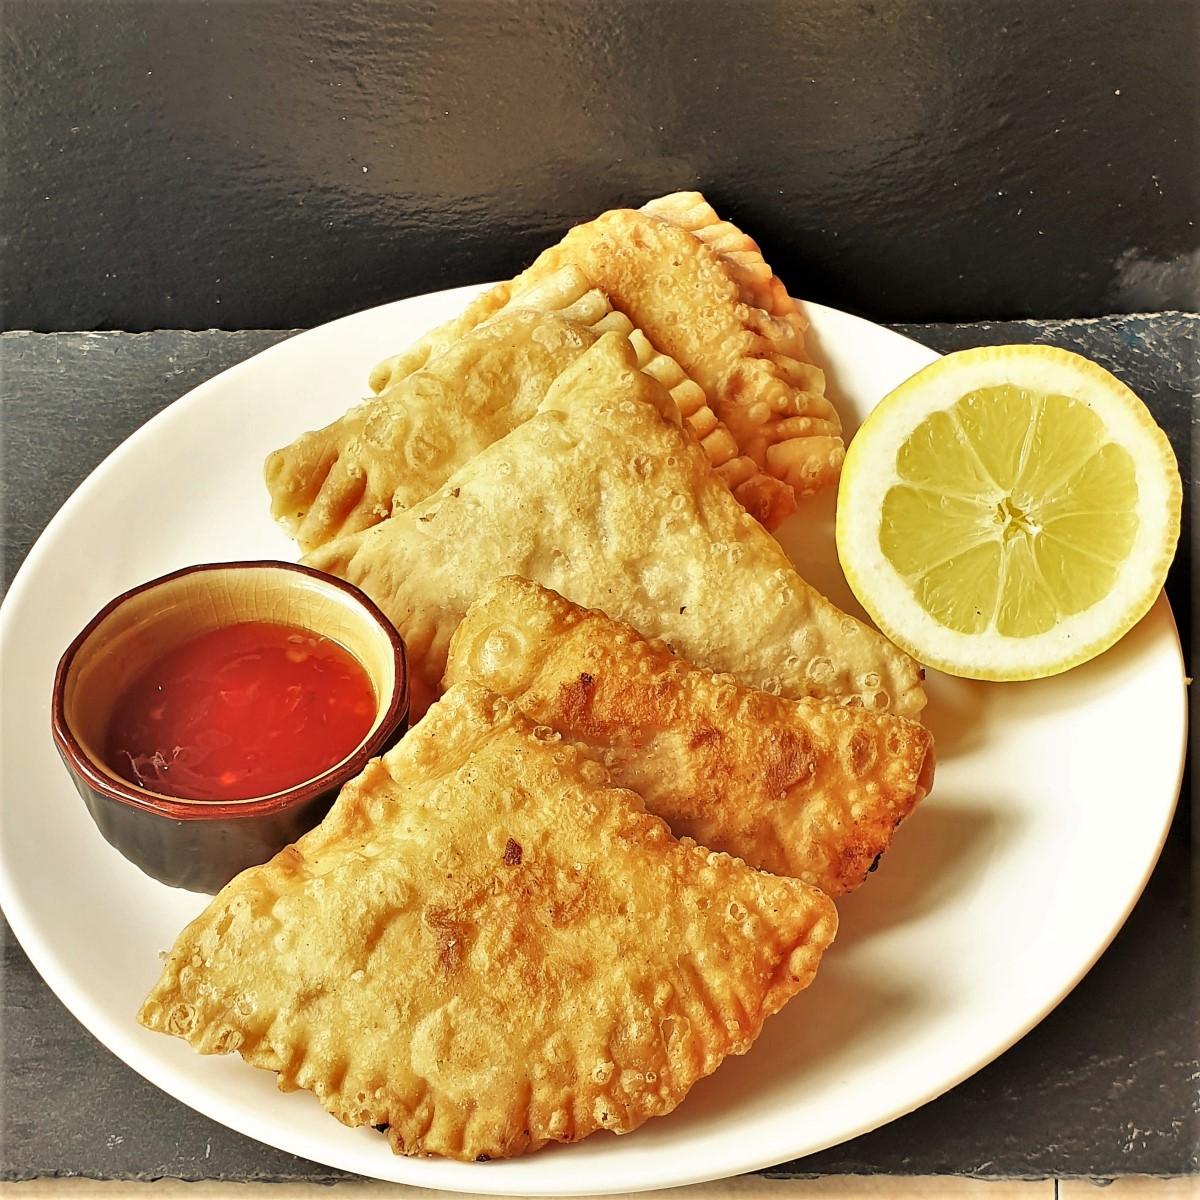 4 samosas on a plate with a slice of lemon and a dipping sauce.